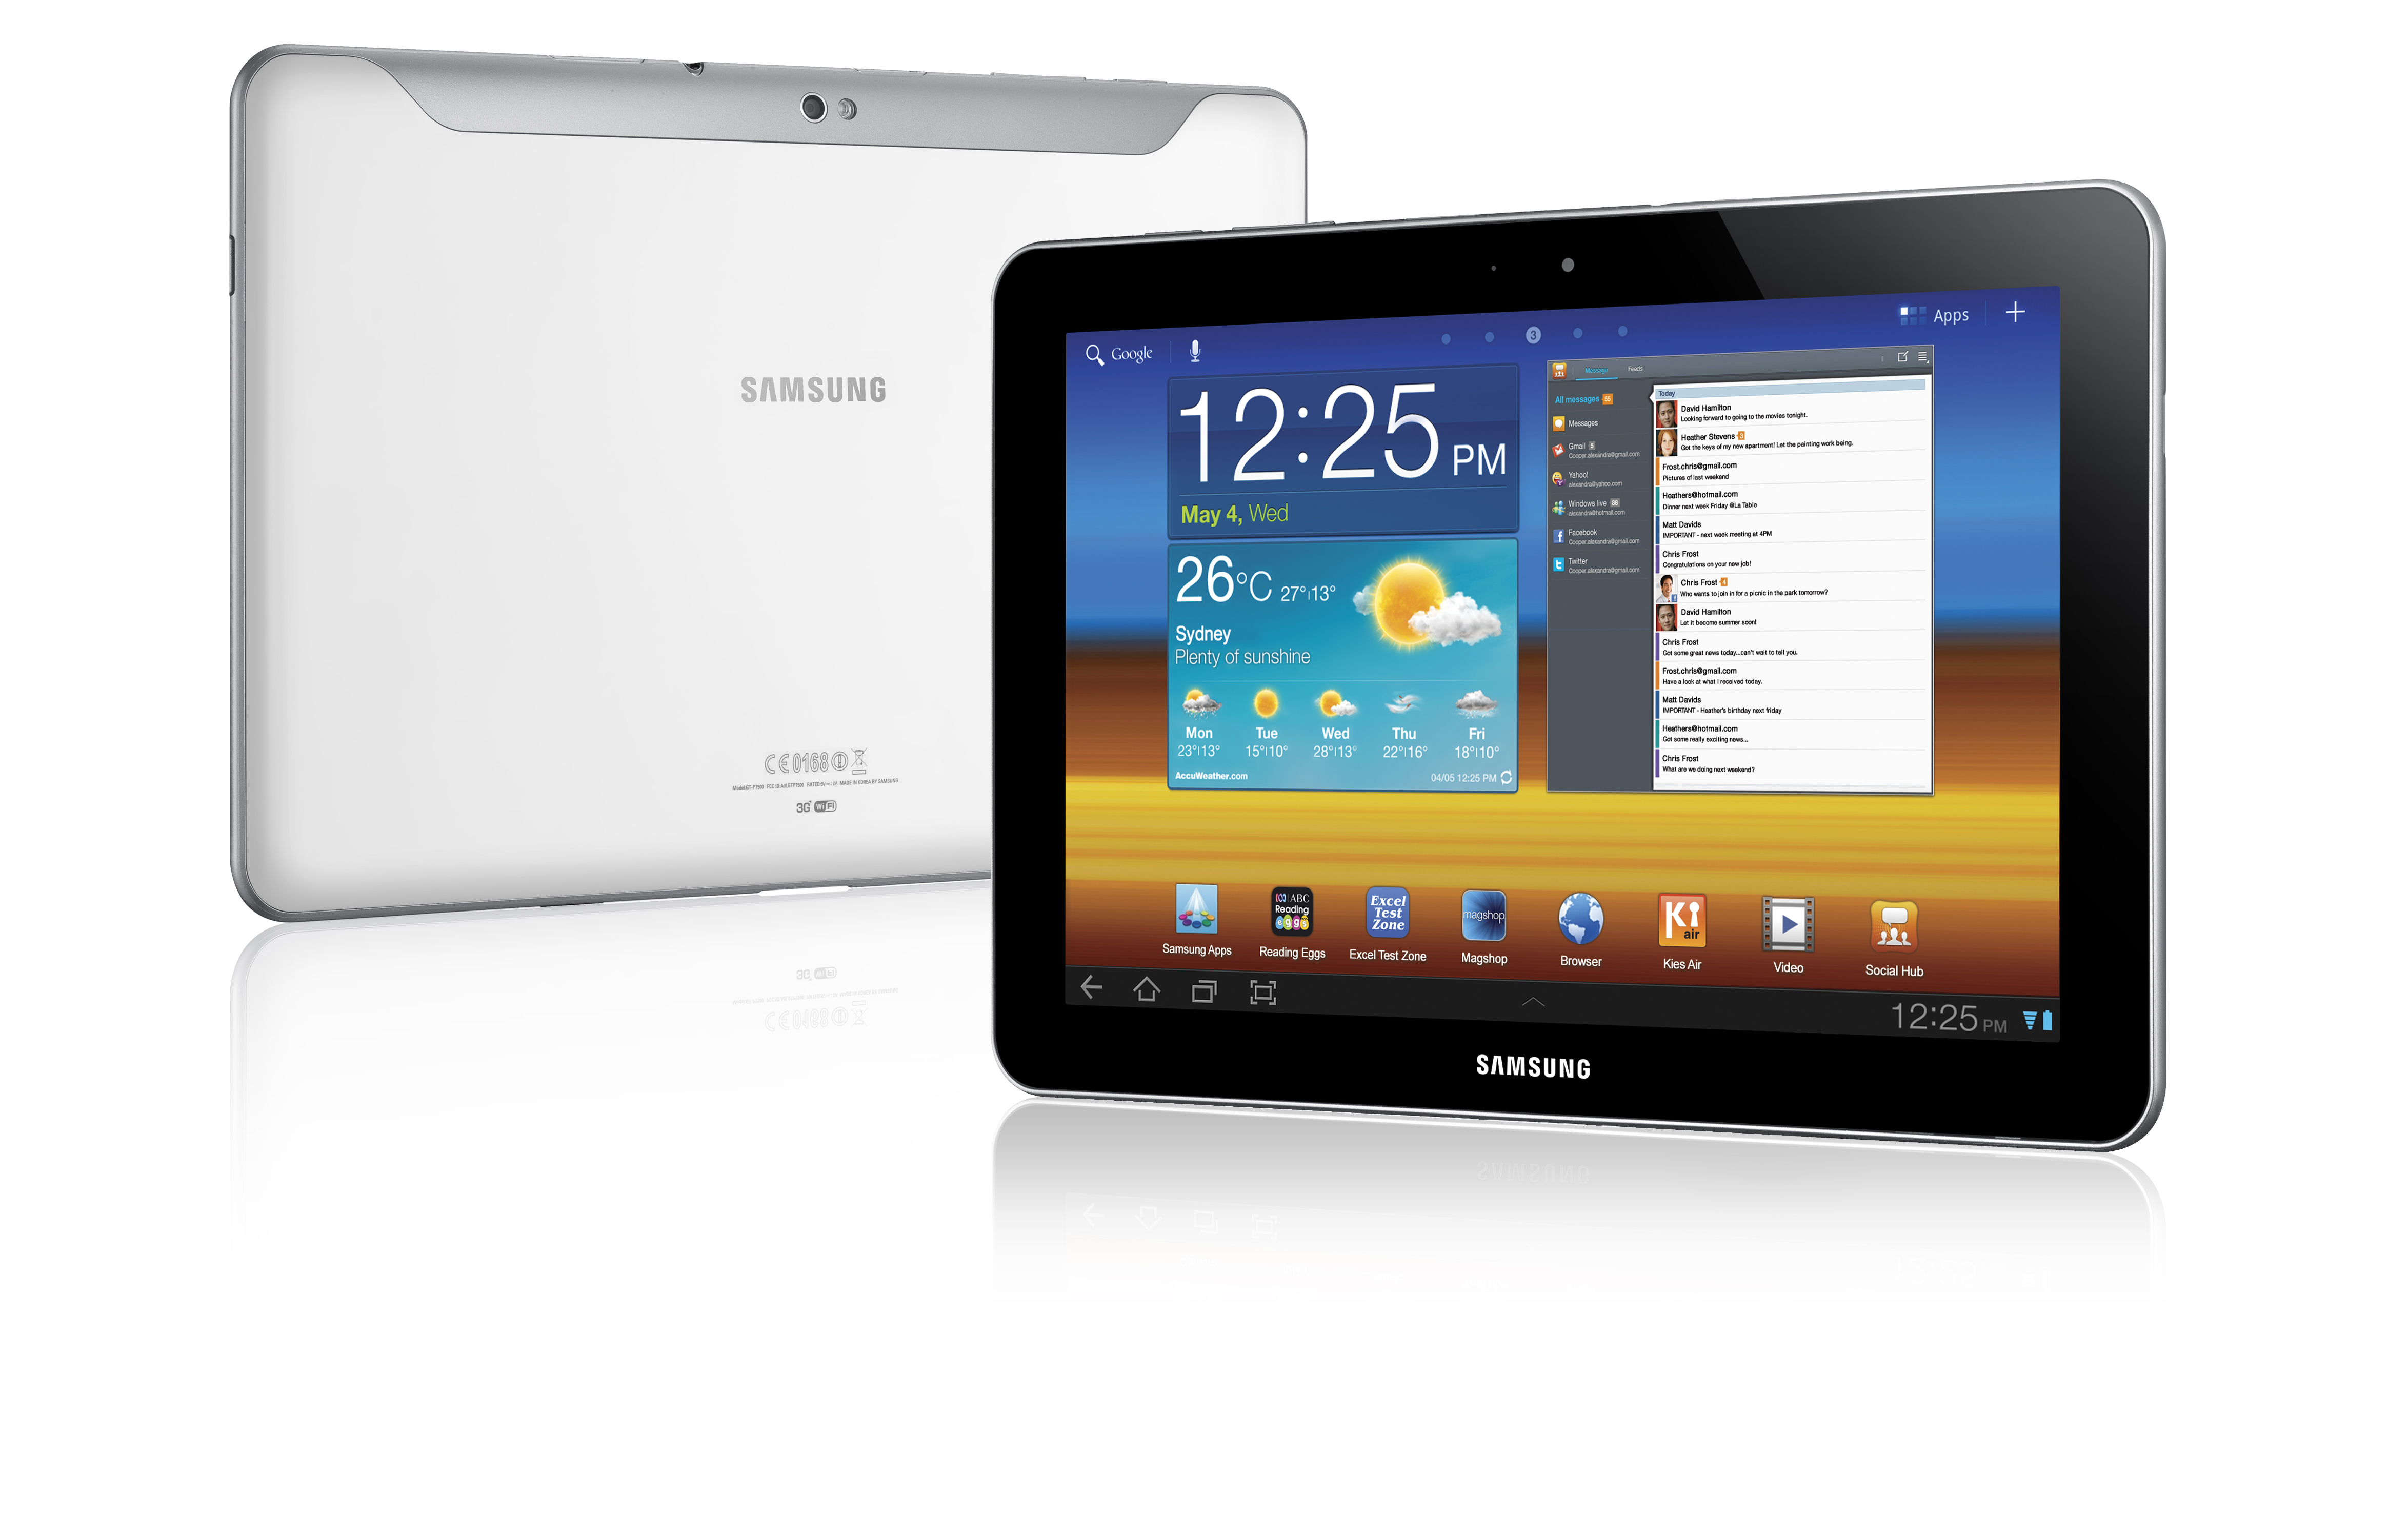 951f89b4811 Samsung Galaxy 10inch Tablet released in time for Christmas - Tech ...